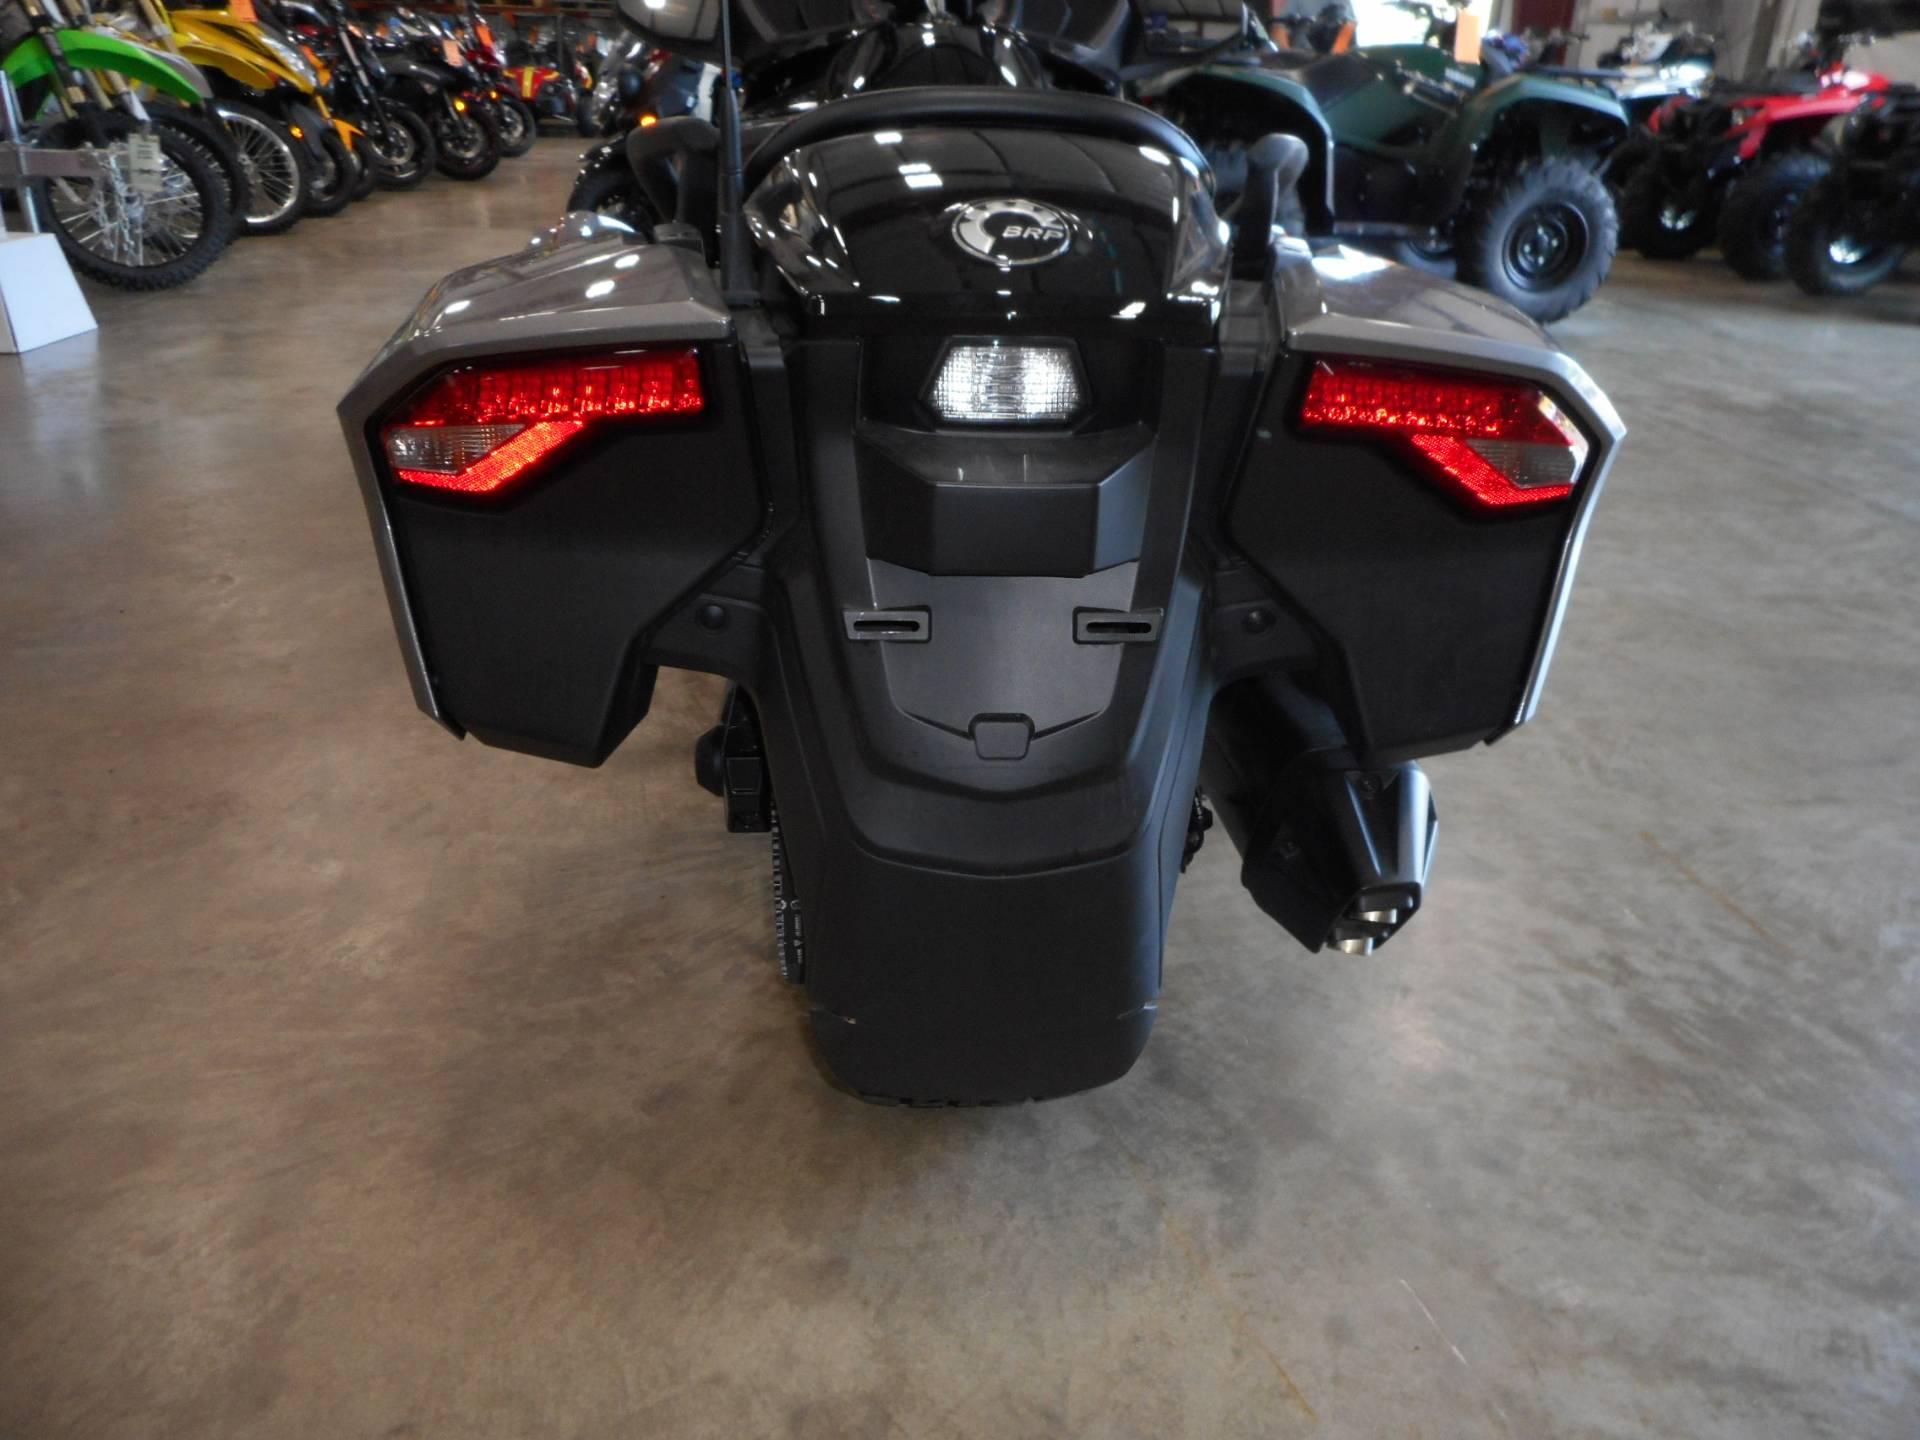 2016 Can-Am Spyder F3-T SM6 w/ Audio System in Belvidere, Illinois - Photo 7